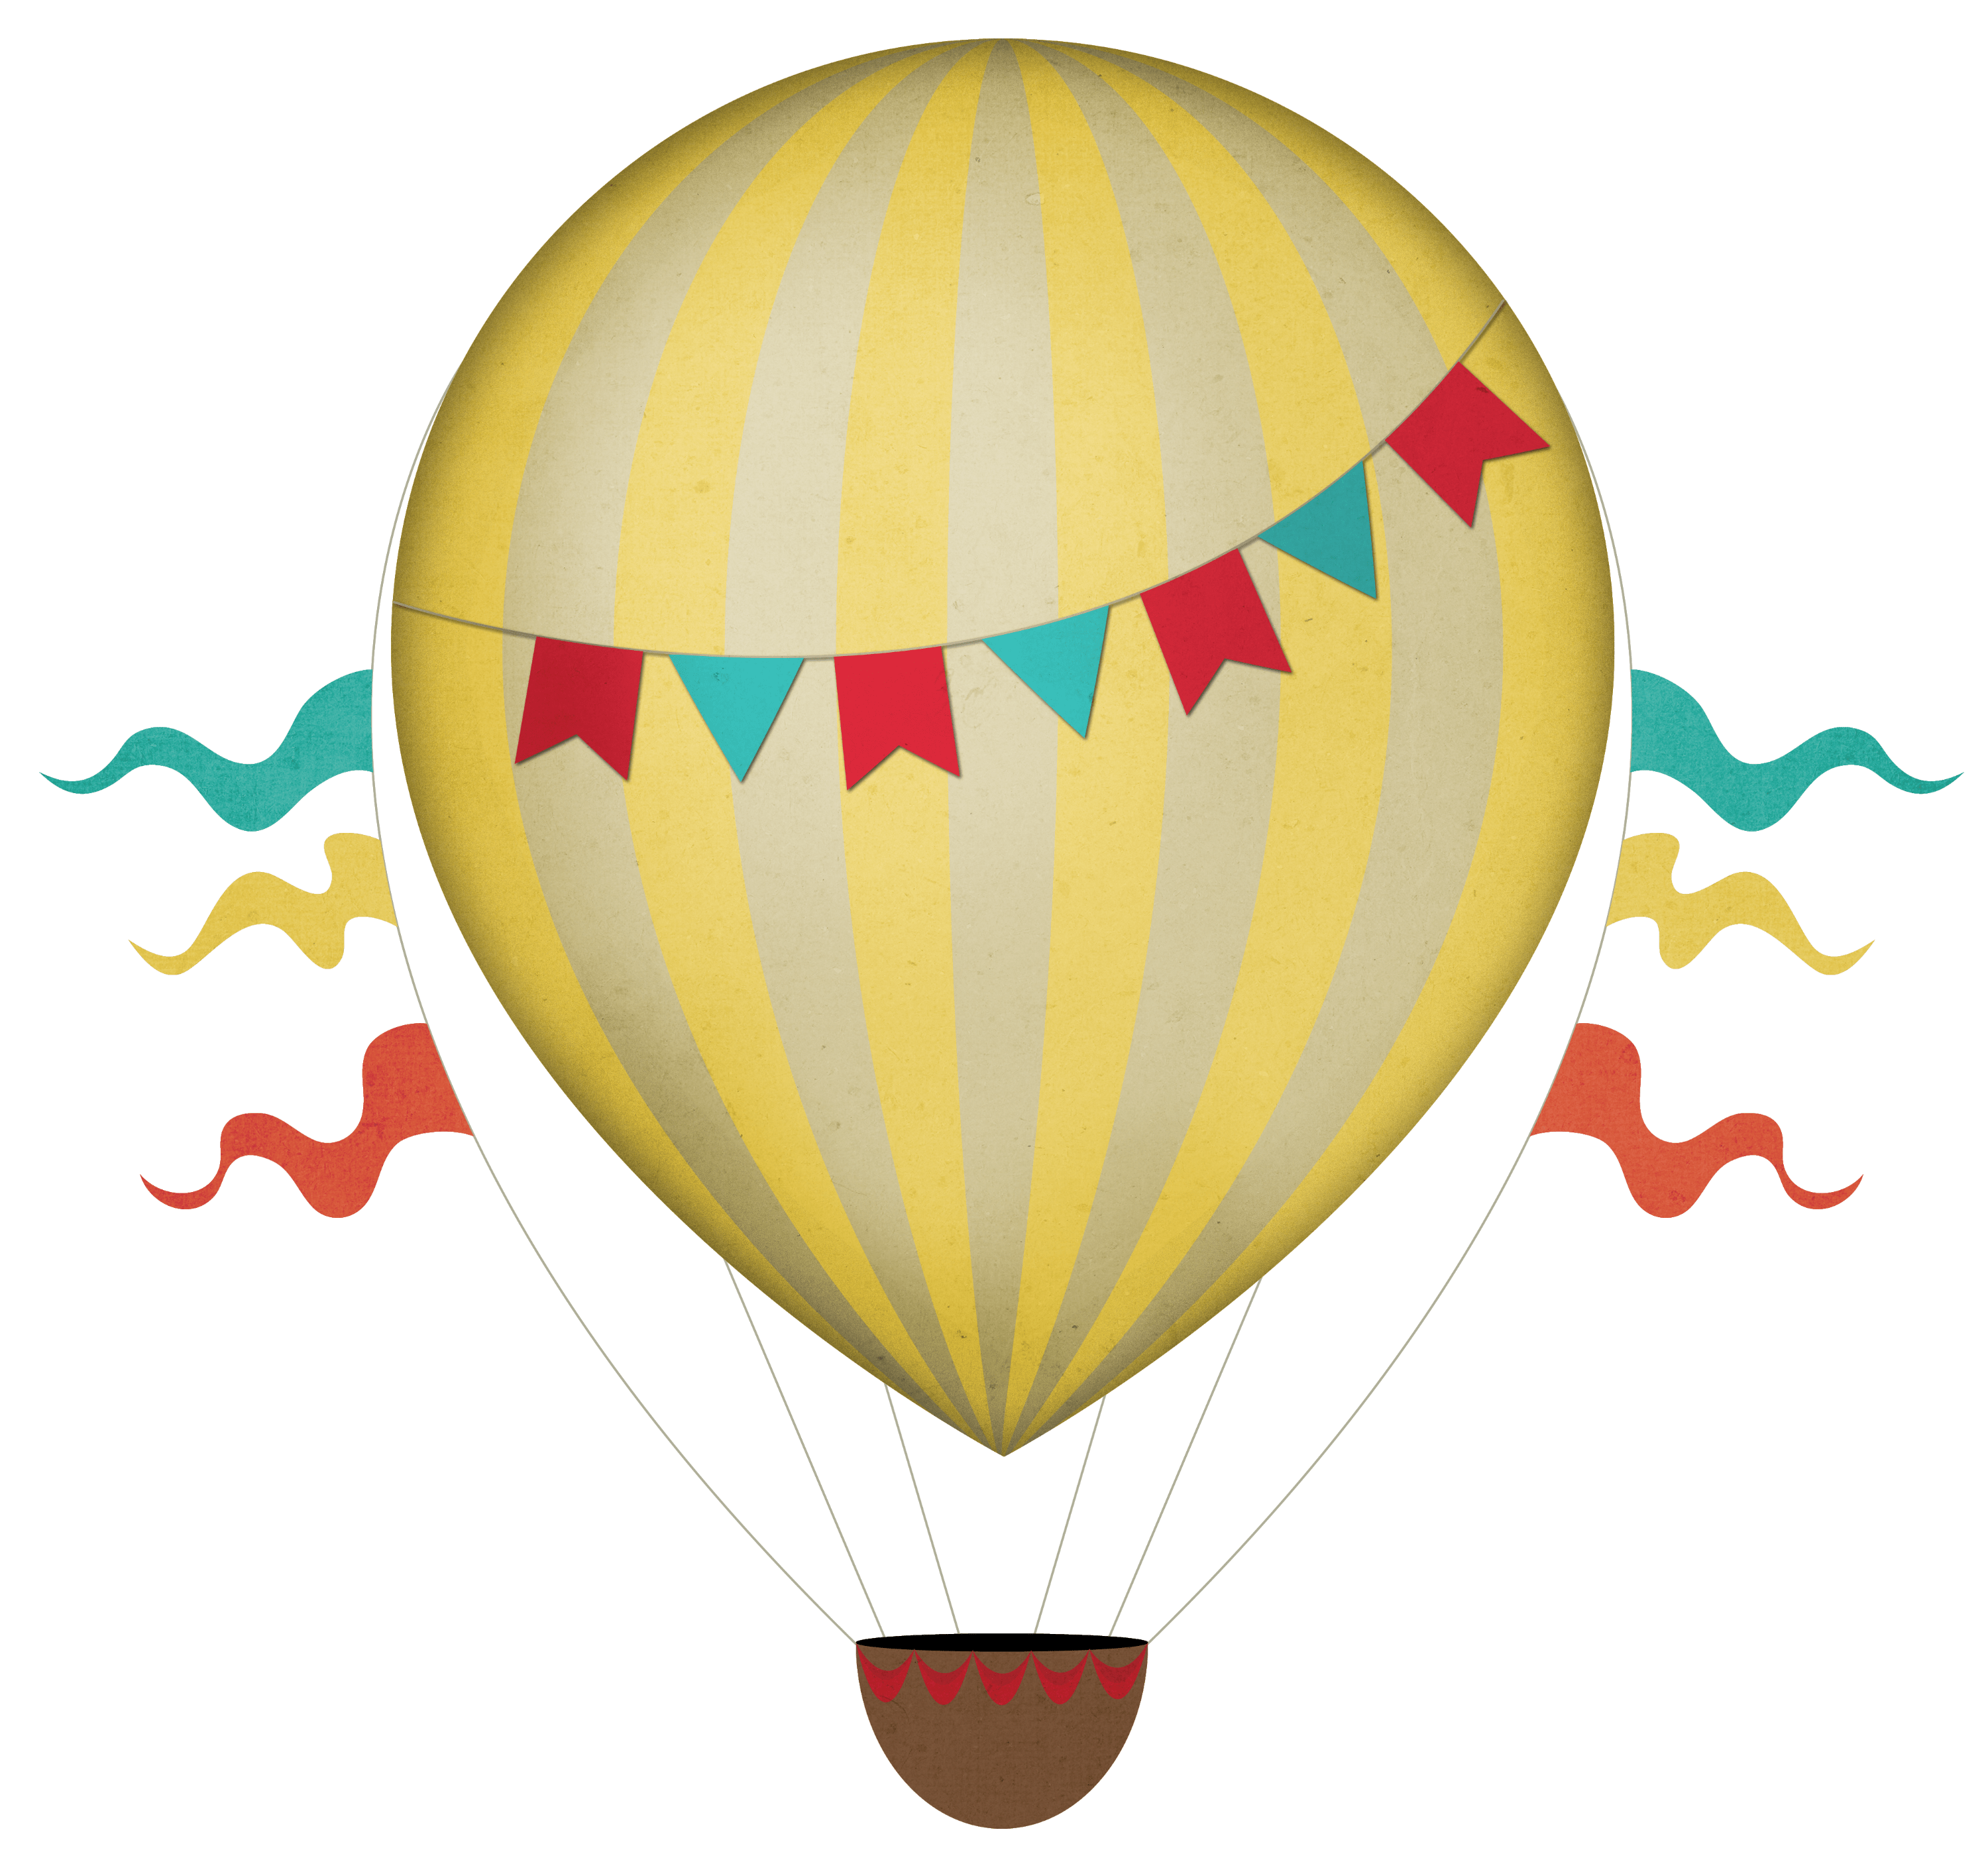 Hot balloon transparent png. Air clipart vintage graphic library download